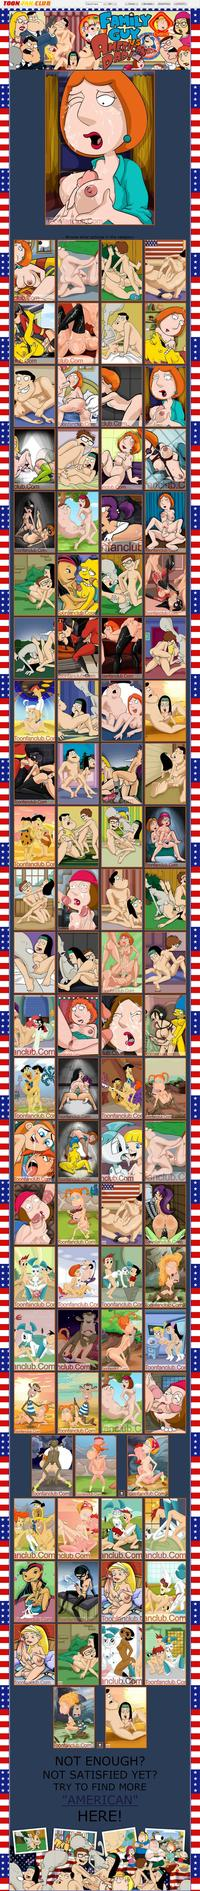 cartoon family porn pic cartoon porn american dad family guy review screenshot